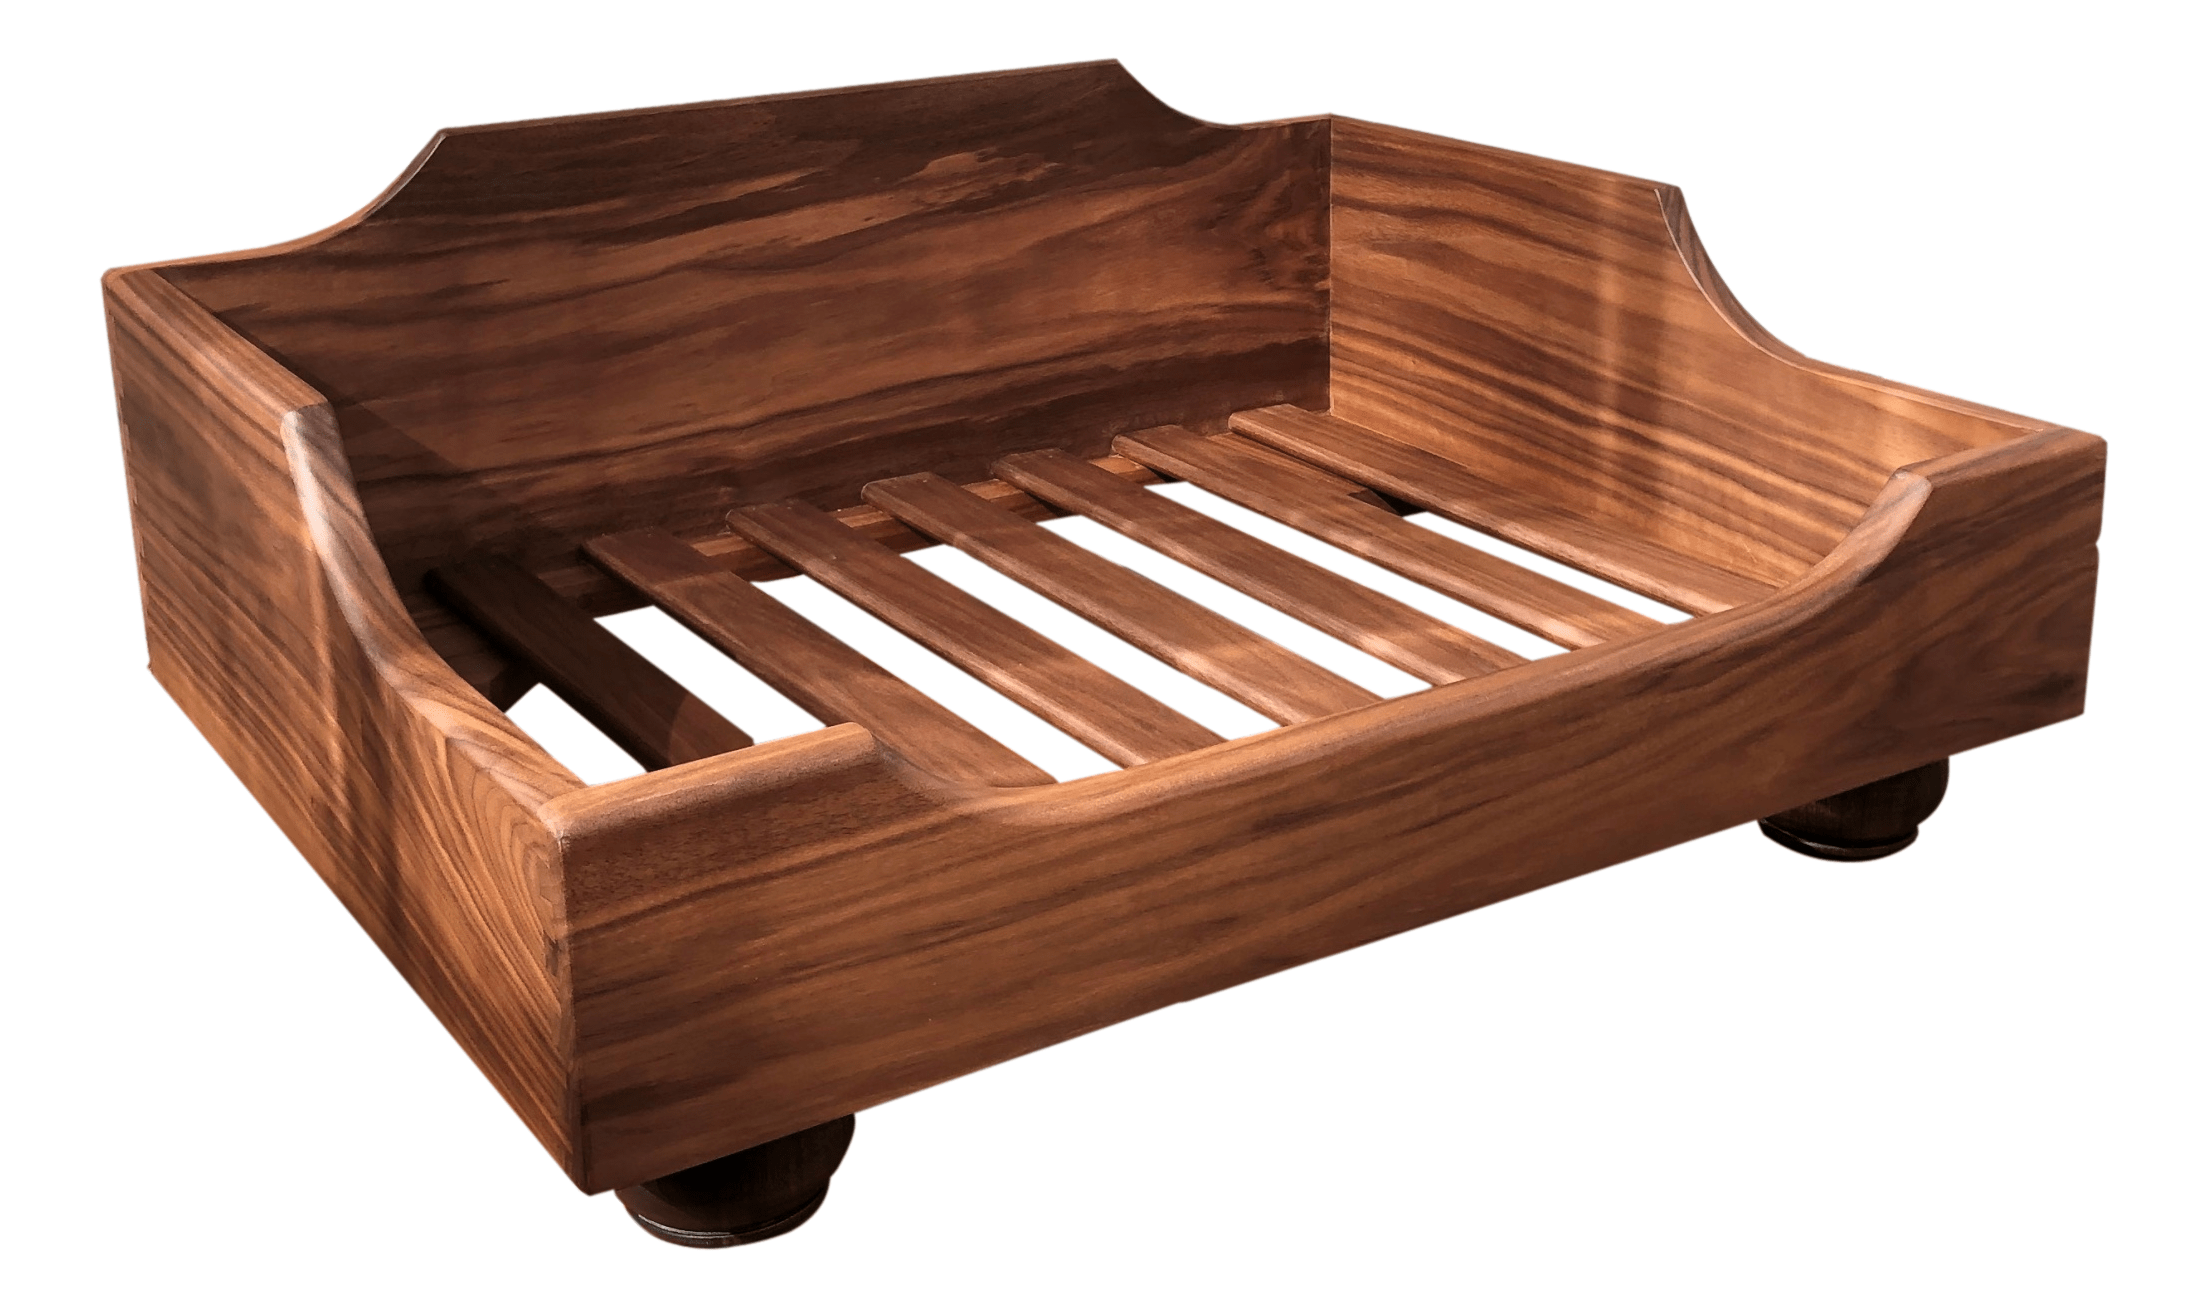 Solid Walnut Raised Wooden Dog Bed - R&M Woodworking